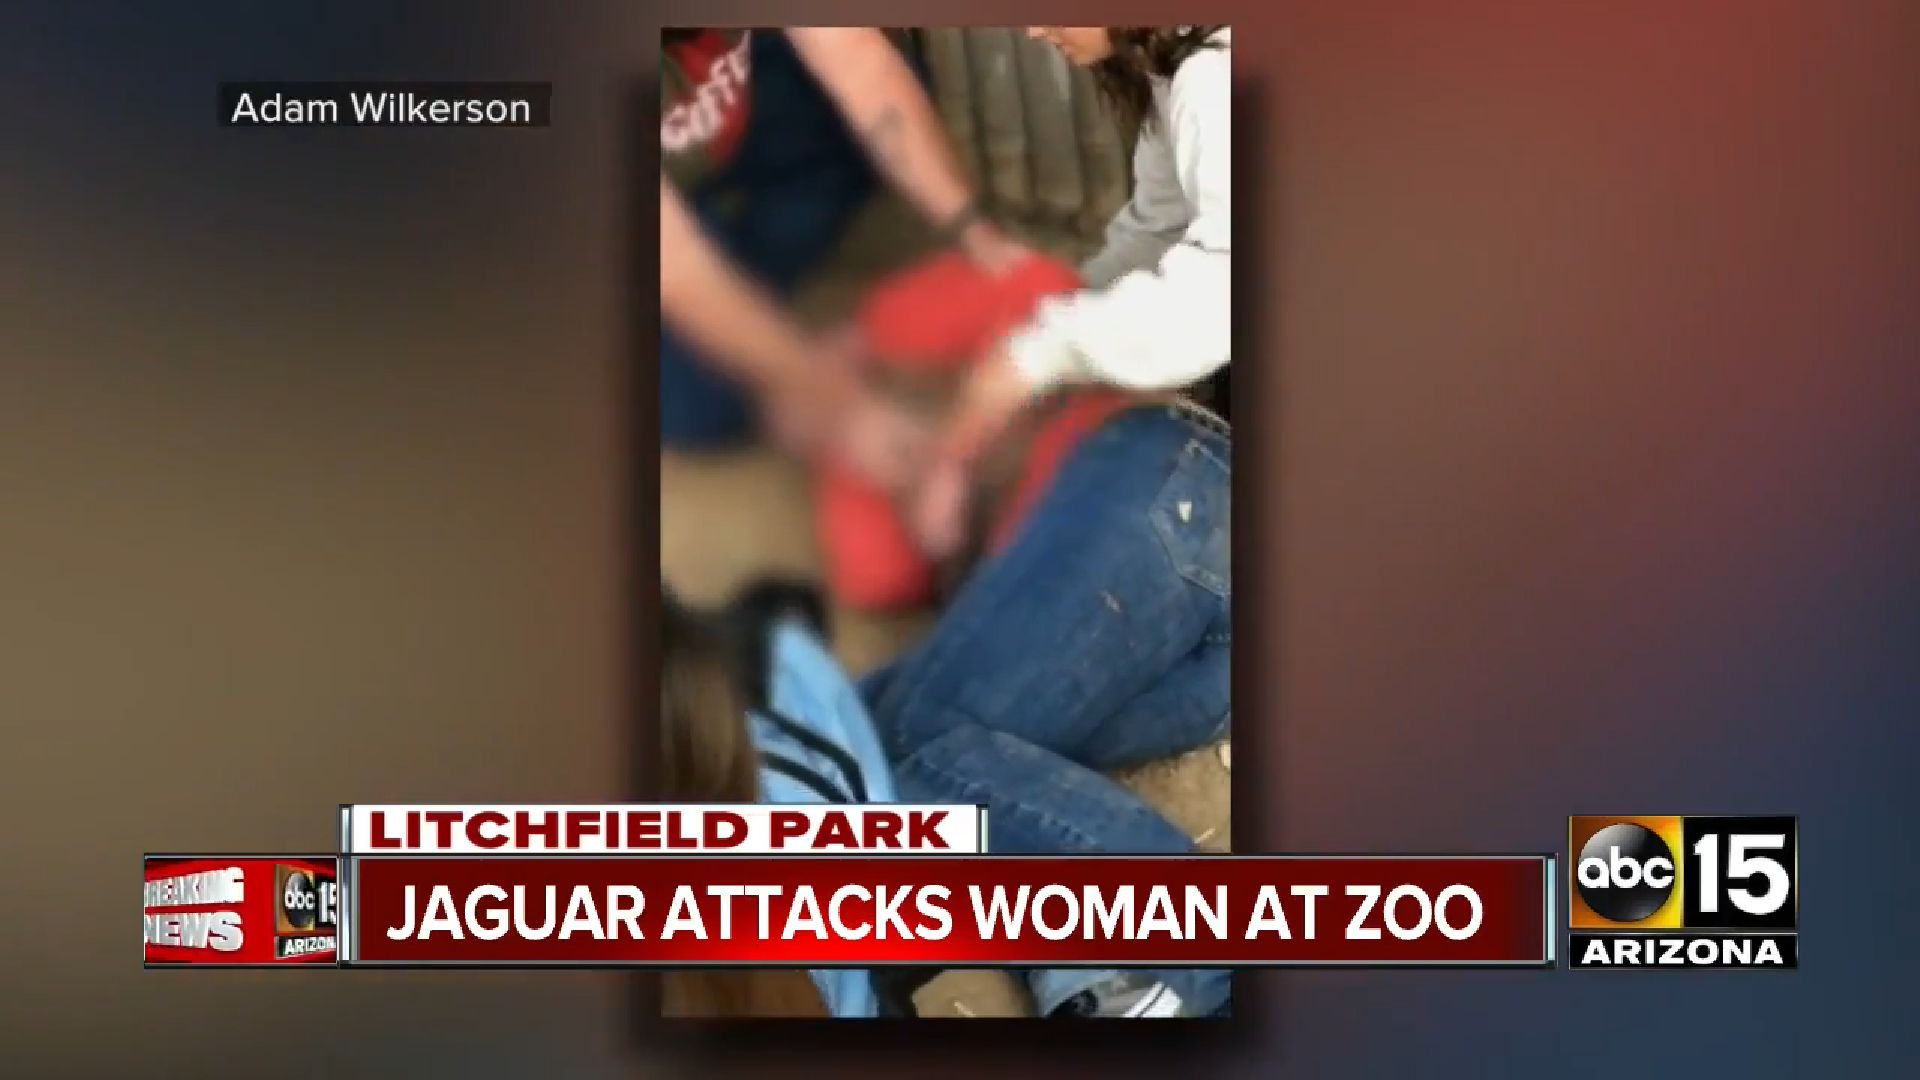 Graphic video taken by another park guest captured the woman screaming in pain after sustaining a deep wound to her arm.